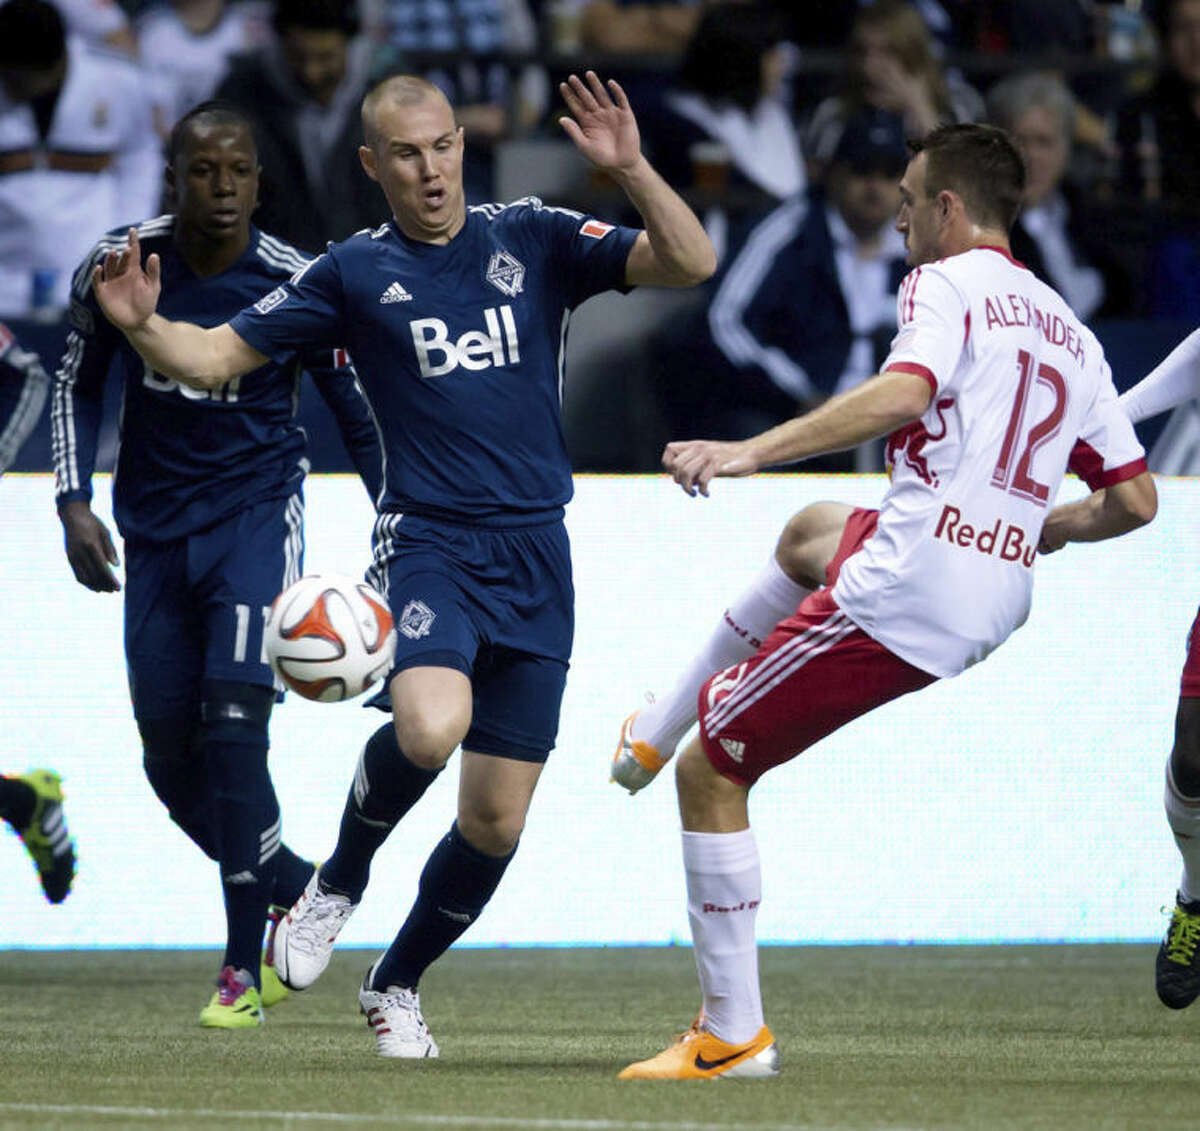 Vancouver Whitecaps' Kenny Miller, left, of Scotland, defends against New York Red Bulls' Eric Alexander during first half MLS soccer action in Vancouver, B.C., on Saturday, March 8, 2014. (AP Photo/The Canadian Press, Darryl Dyck)